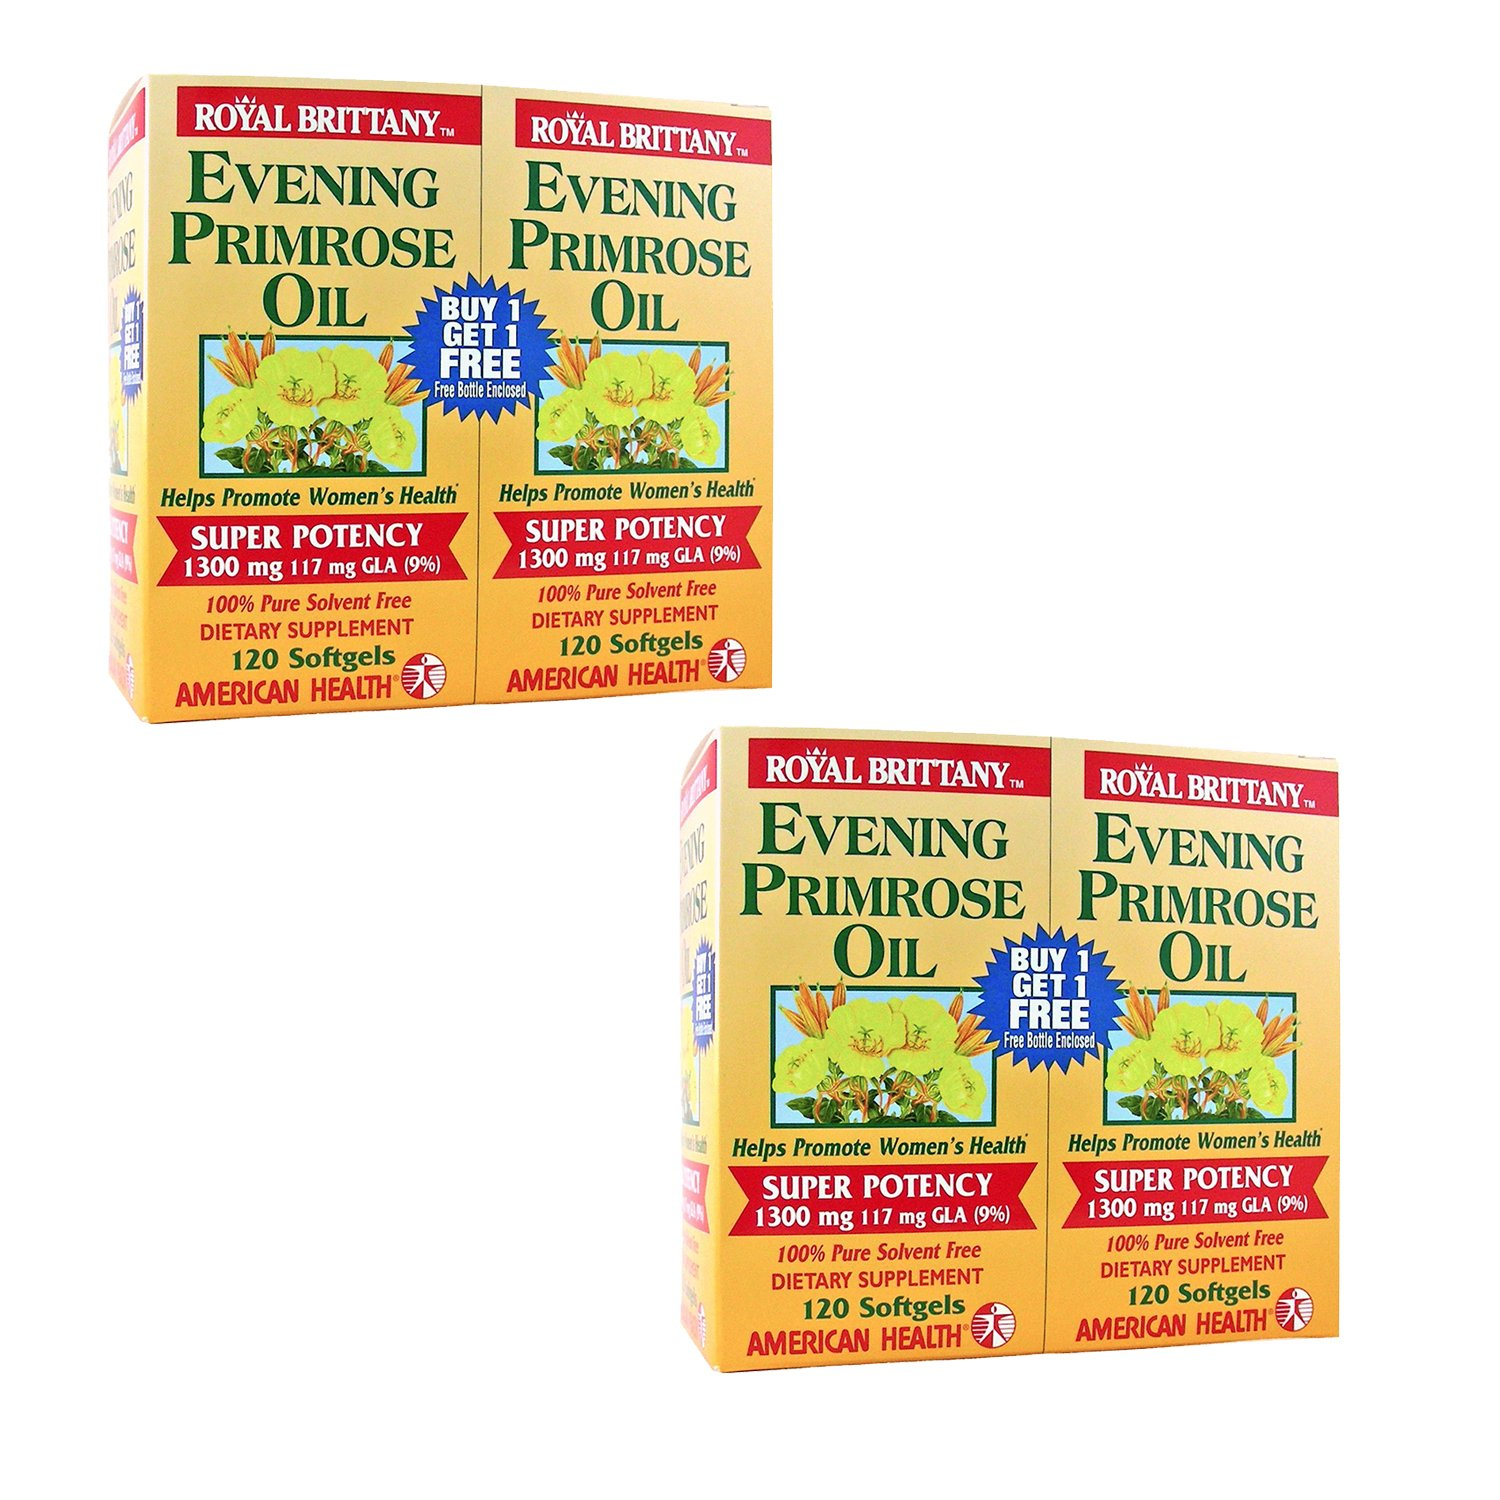 Royal Brittany Evening Primrose Oil 1300mg Two (2) Twin Packs